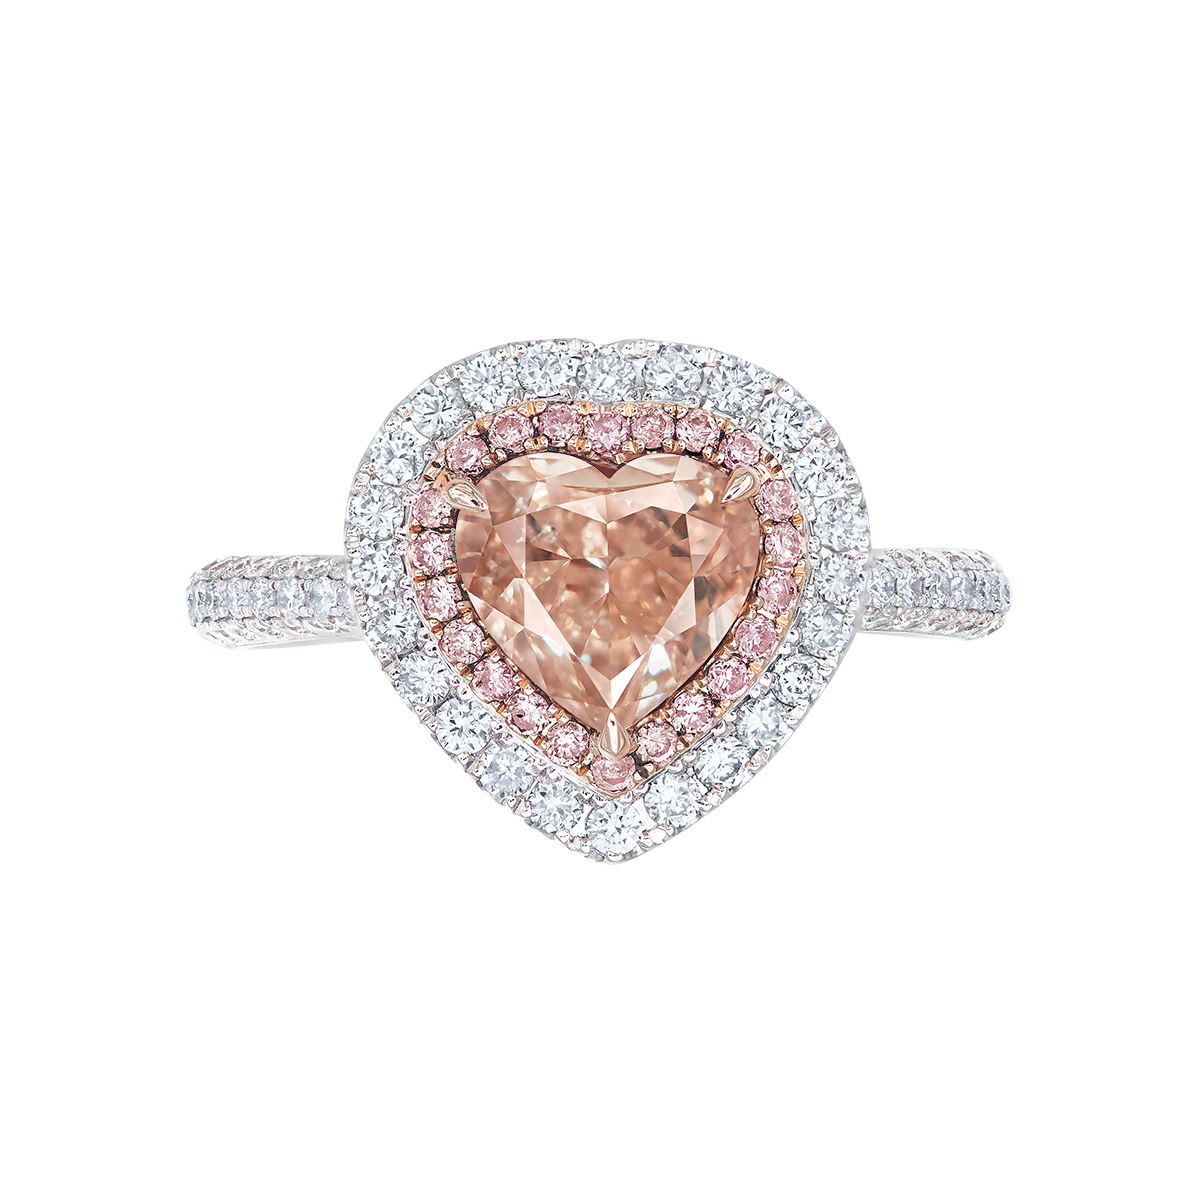 2.01克拉 粉棕鑽鑽戒